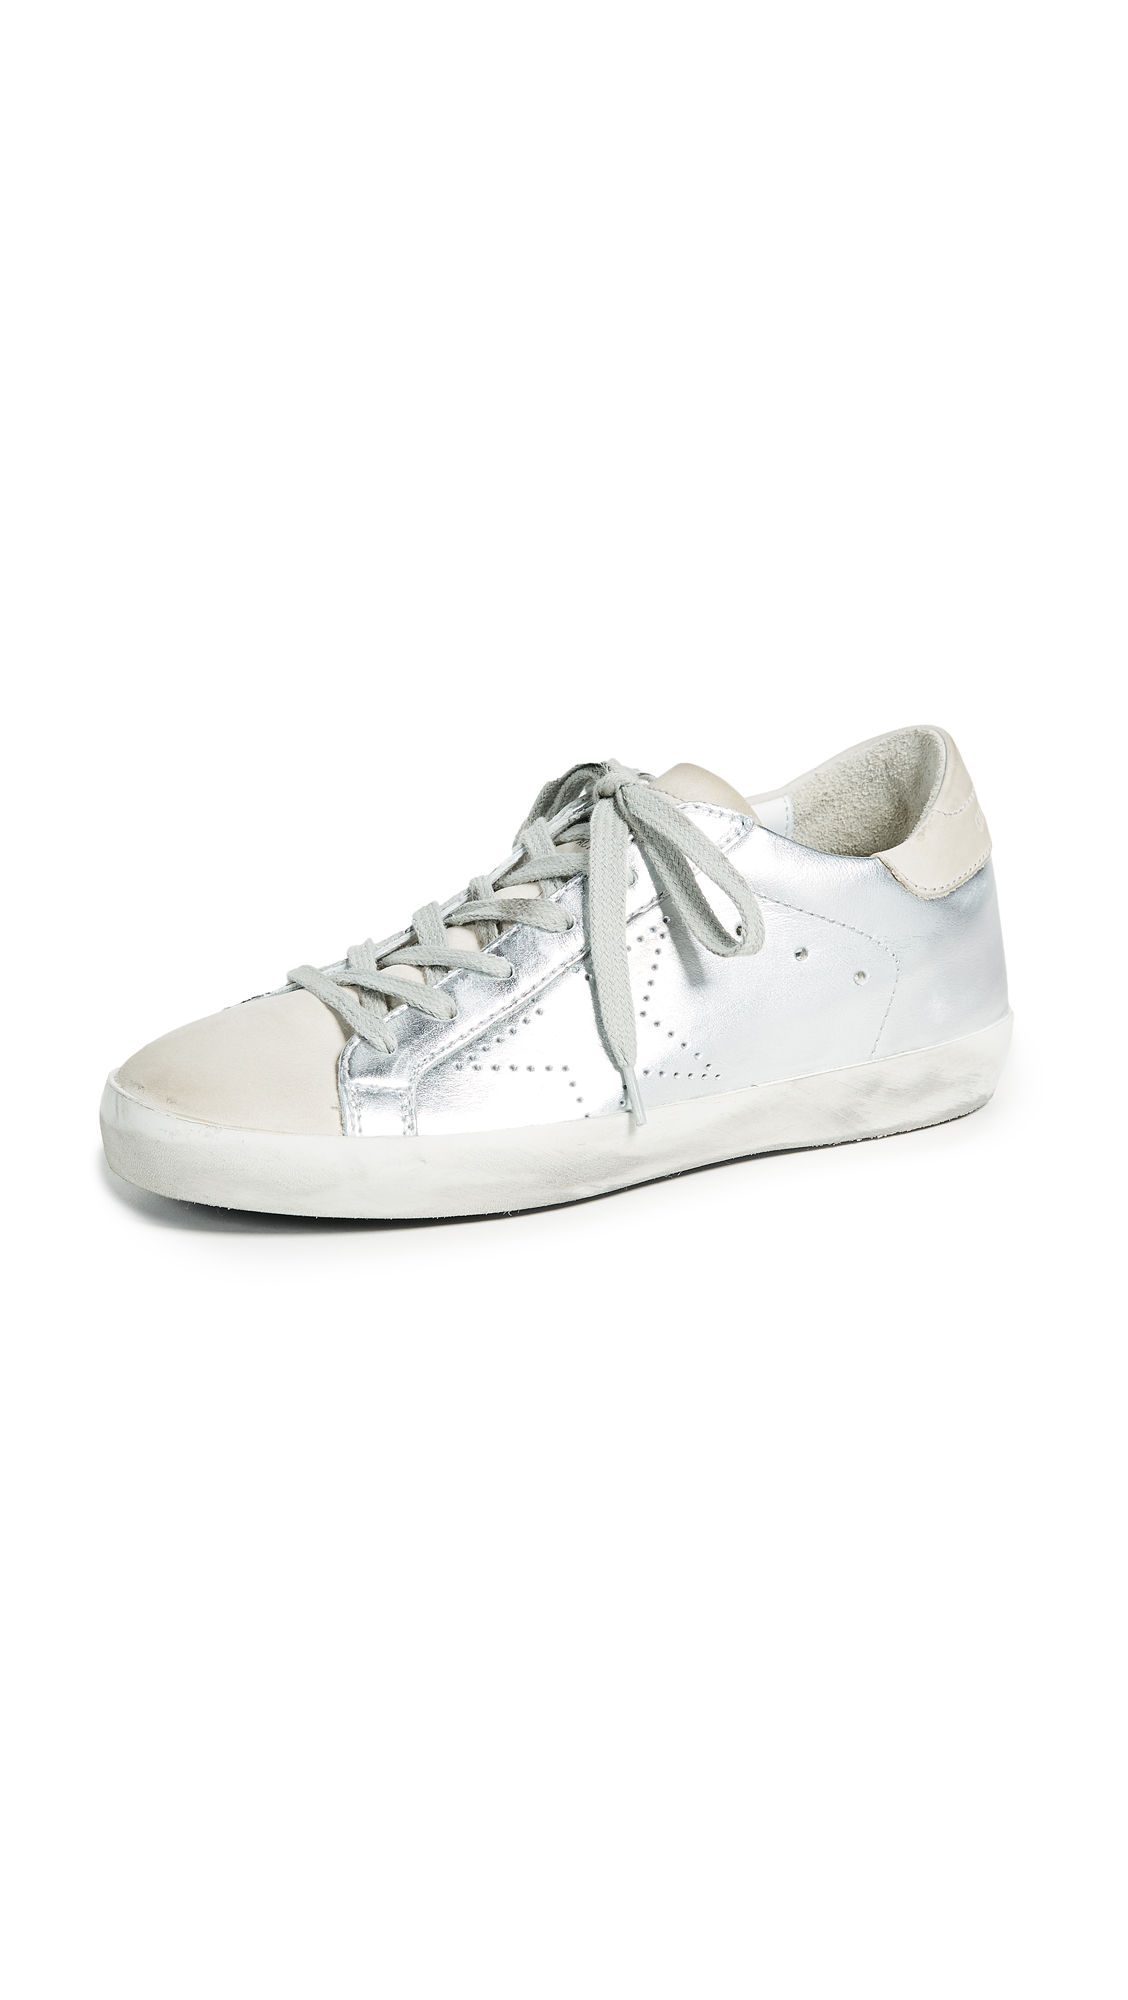 Golden Goose Superstar Sneakers - Silver Skate